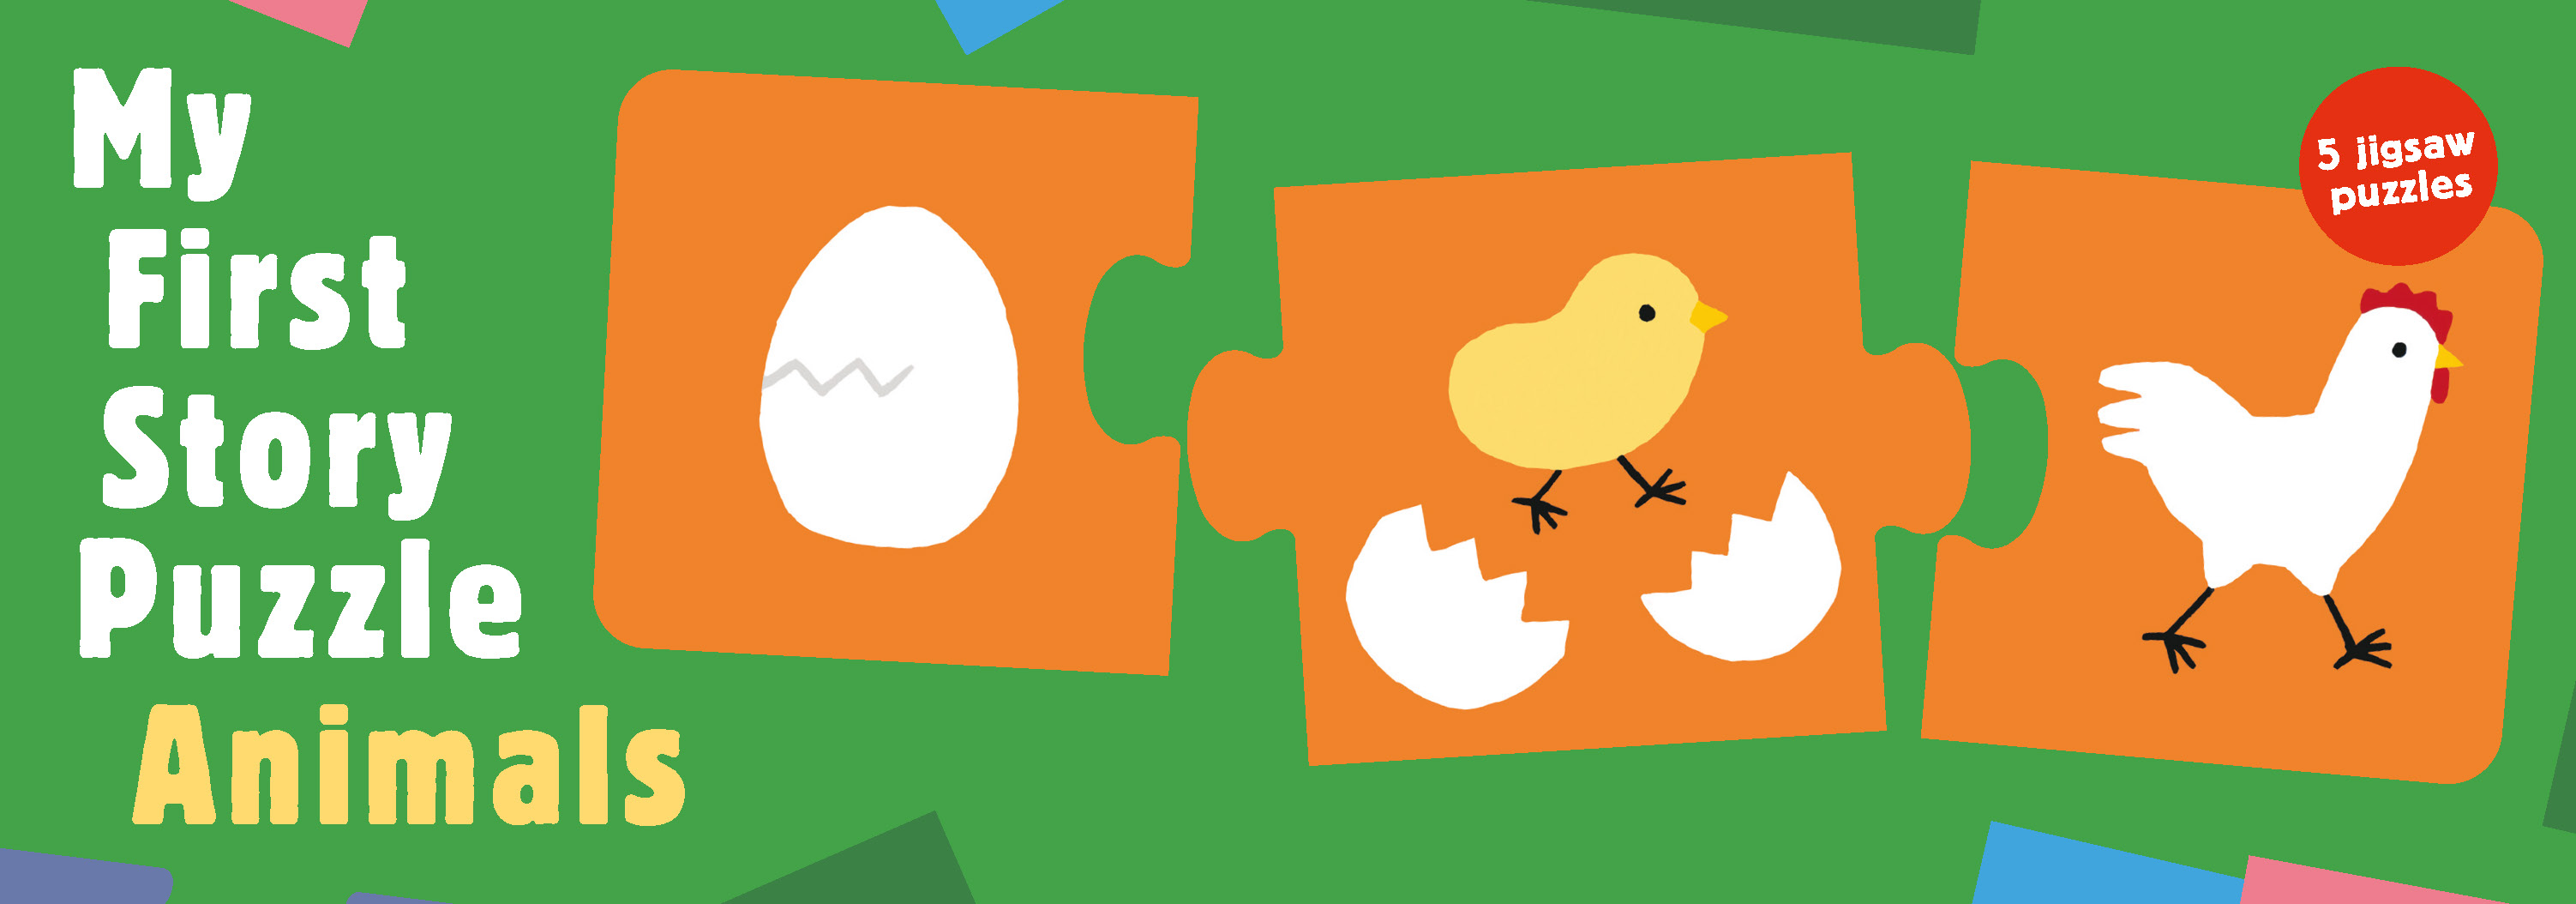 My First Story Puzzle: Animals - Product Thumbnail